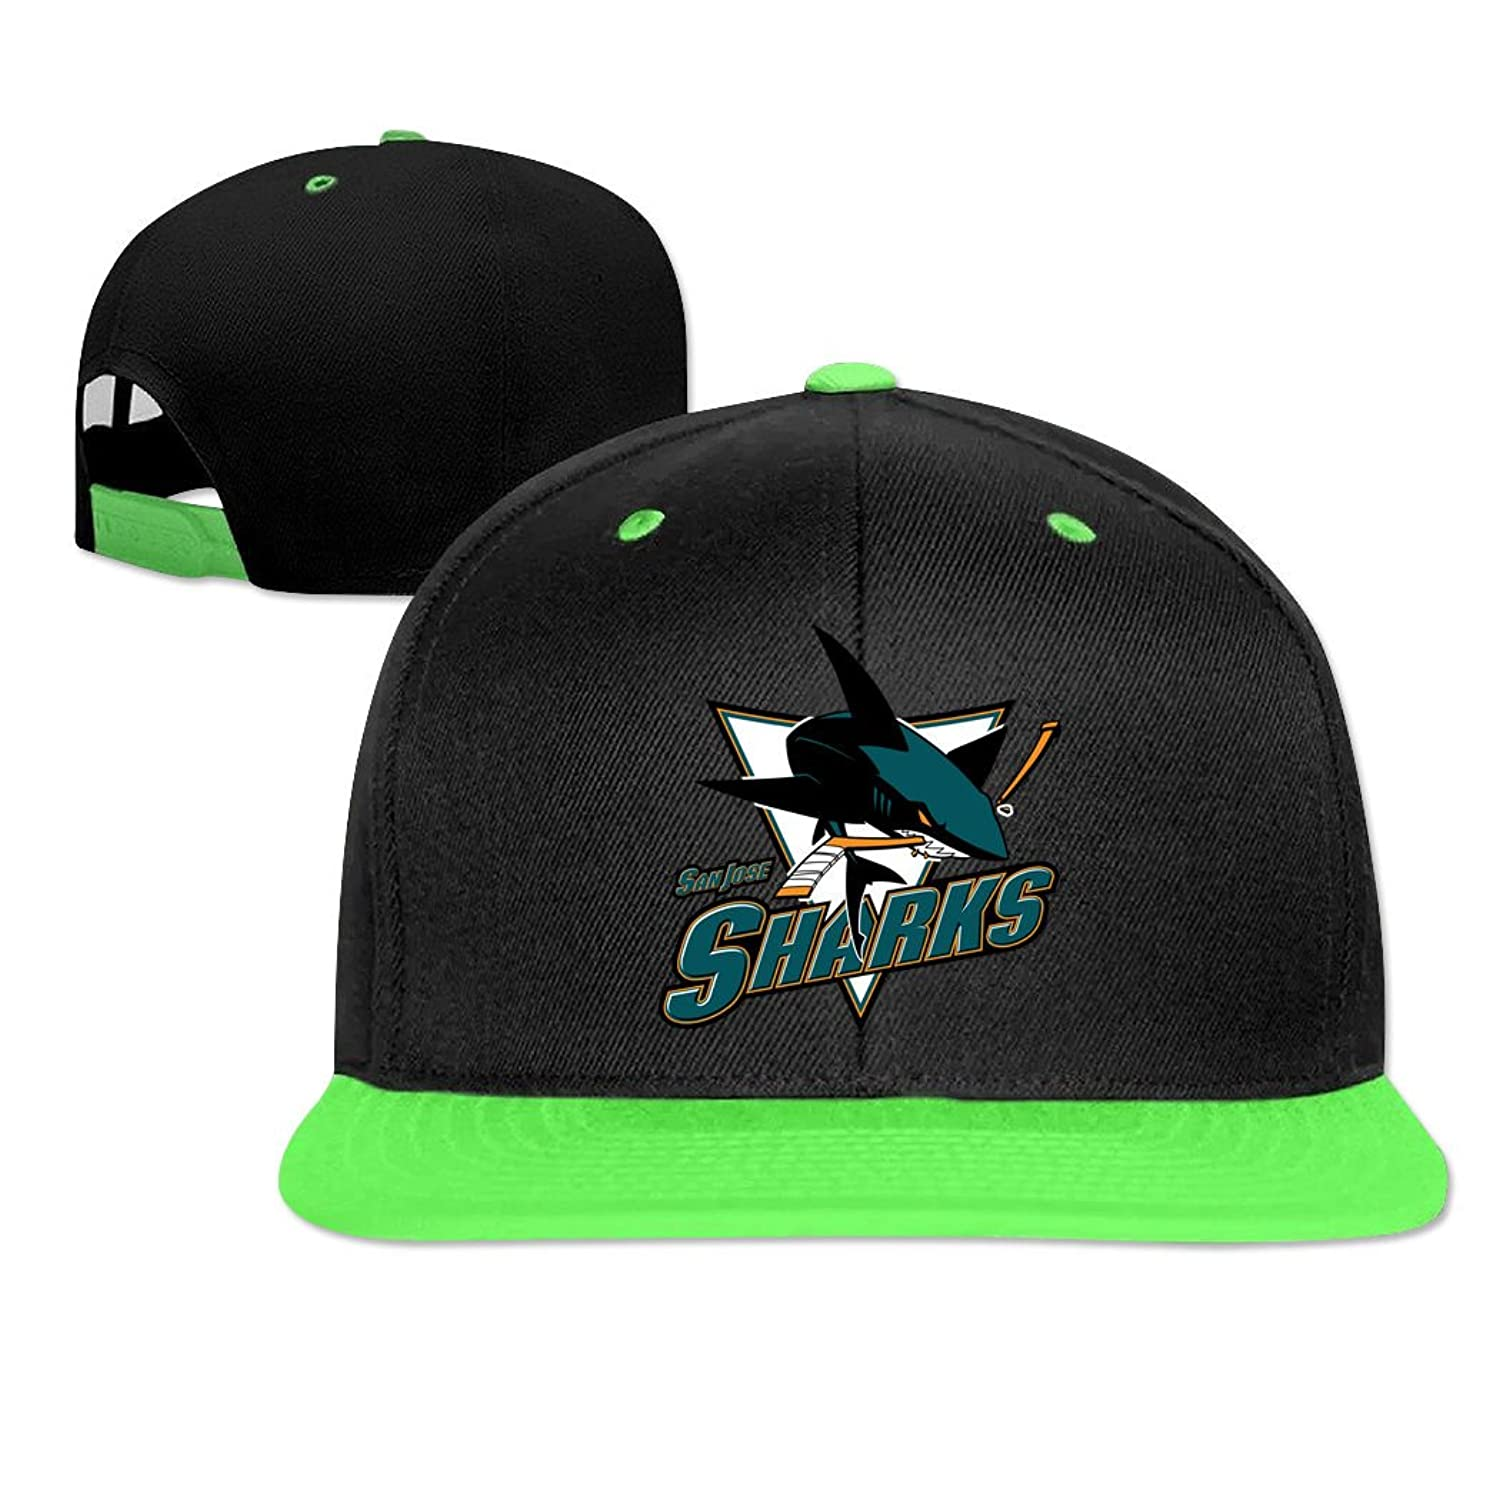 LEU Unisex San Jose Sharks NHL 2016 Hip Hop Caps Adjustable Sun Hat